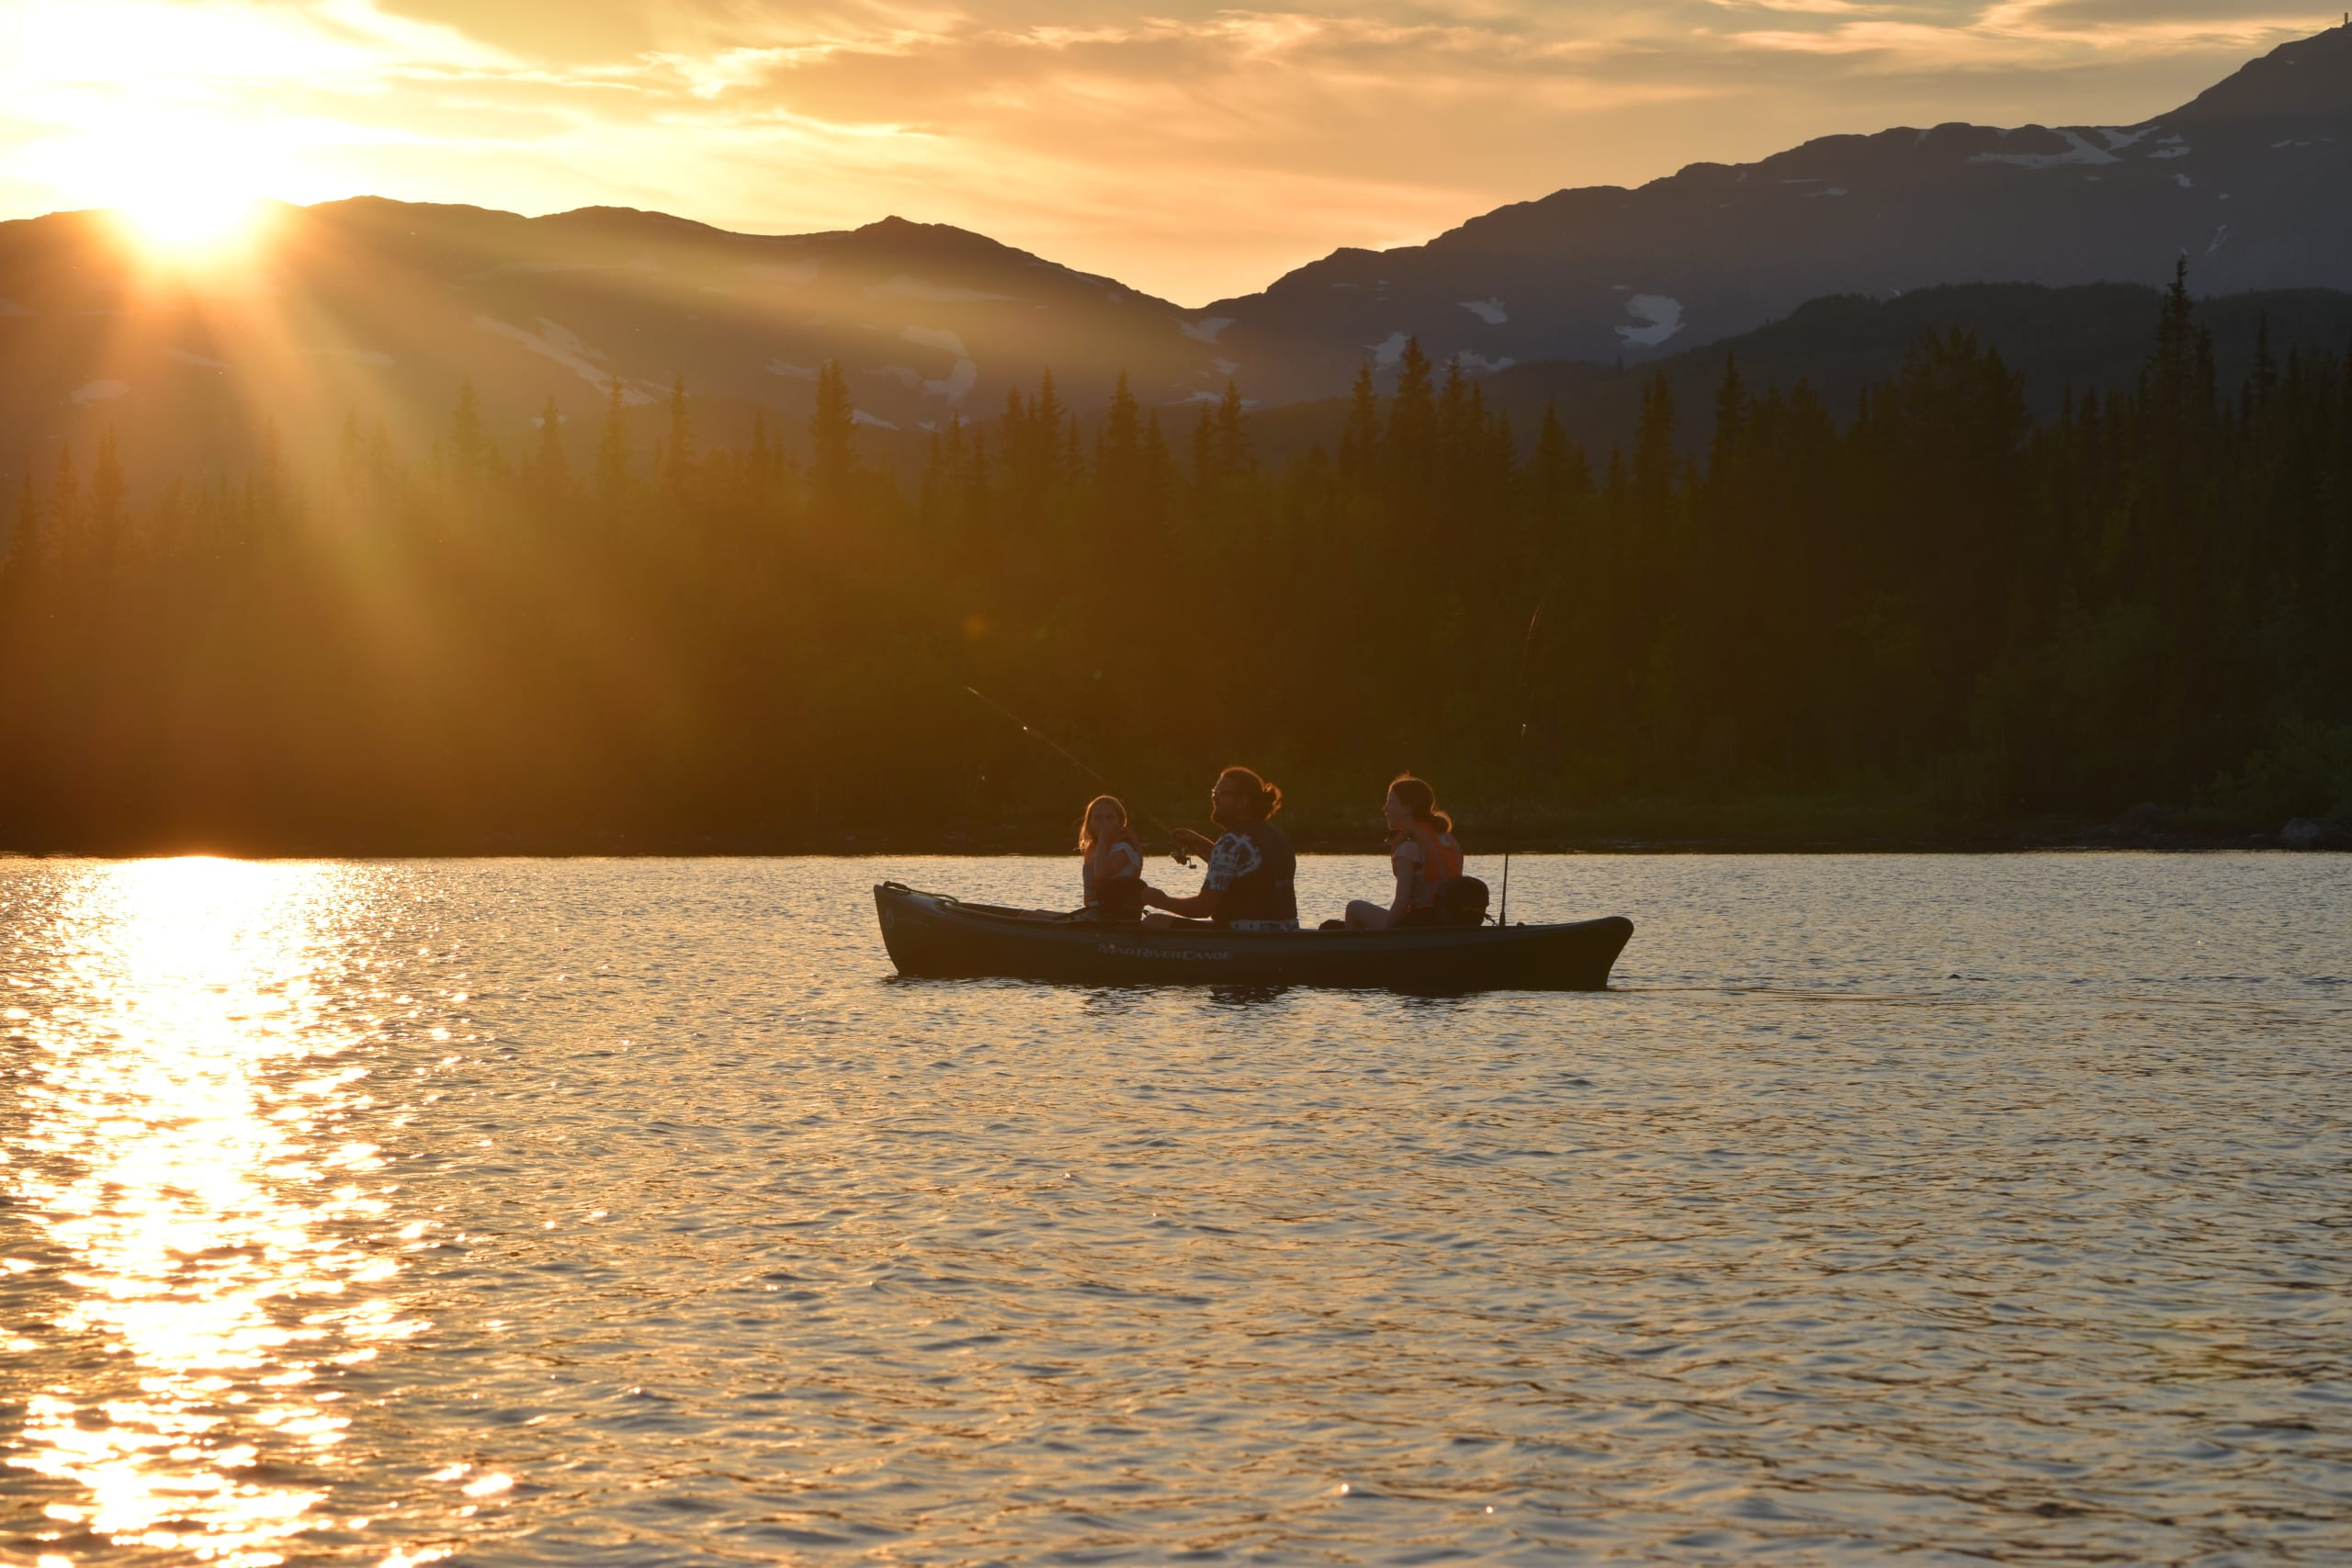 Family-Friendly Guided Canoe Tour at Beitostølen